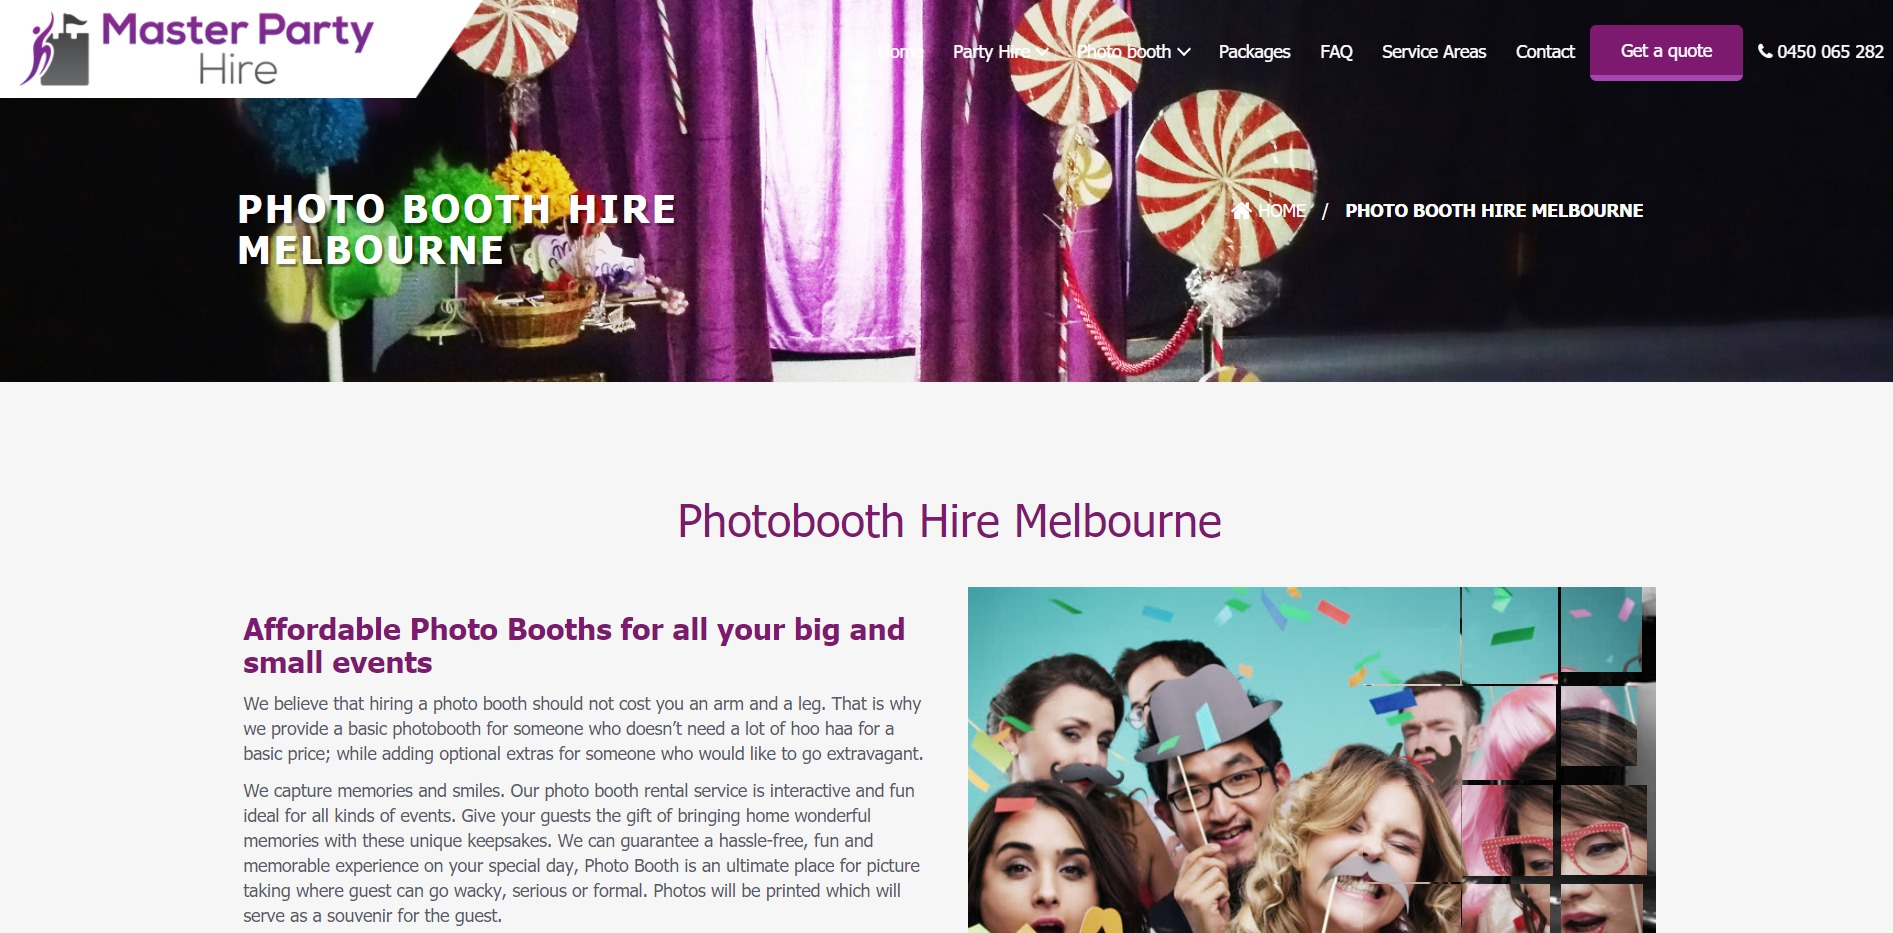 Master Party Hire